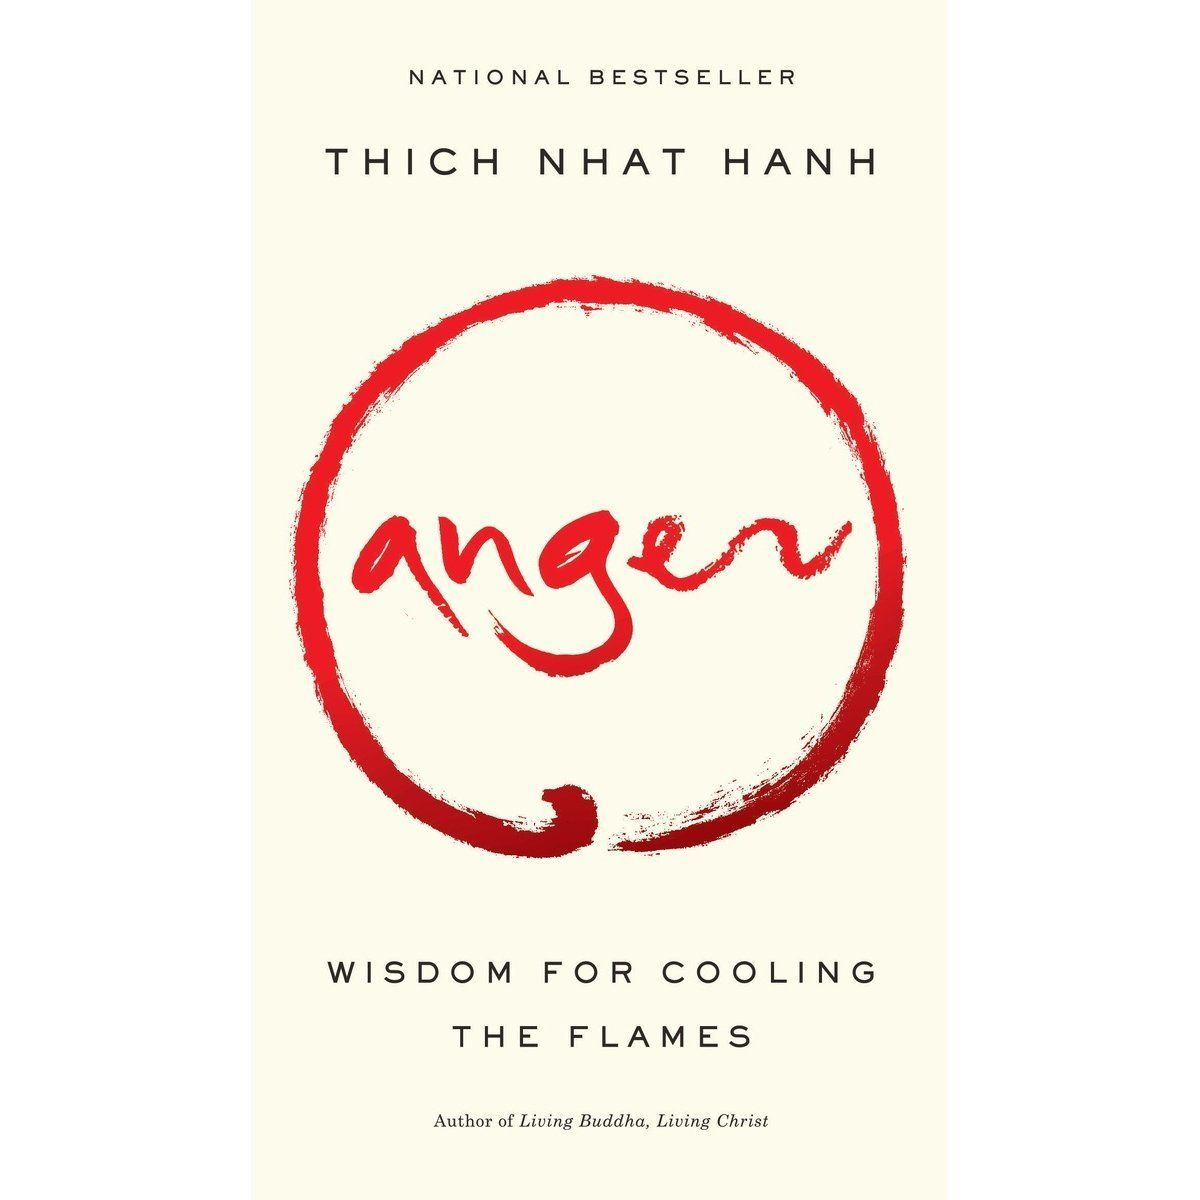 Anger let go of anger thich nhat hanh wisdom